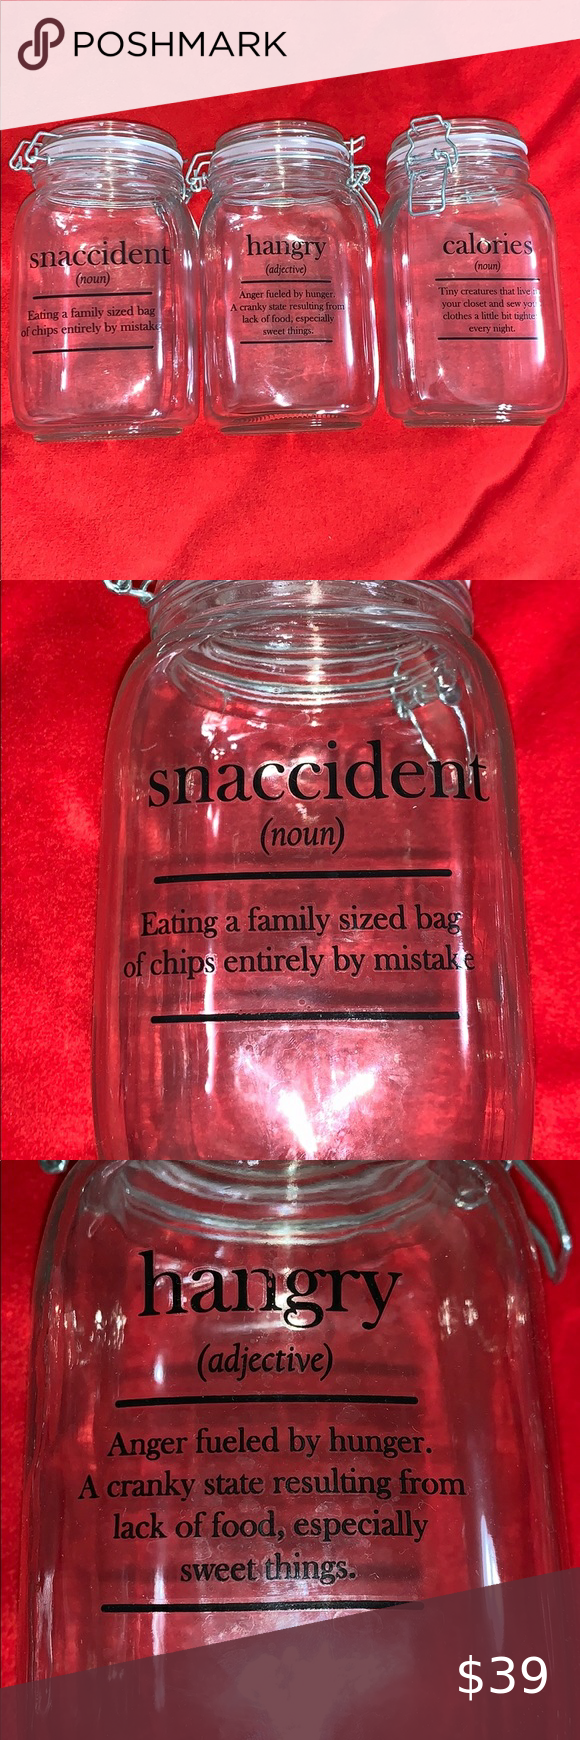 Snaccident Hangry Calories Funny Sayings Canisters Snack Jars Chip Bags Glass Canisters